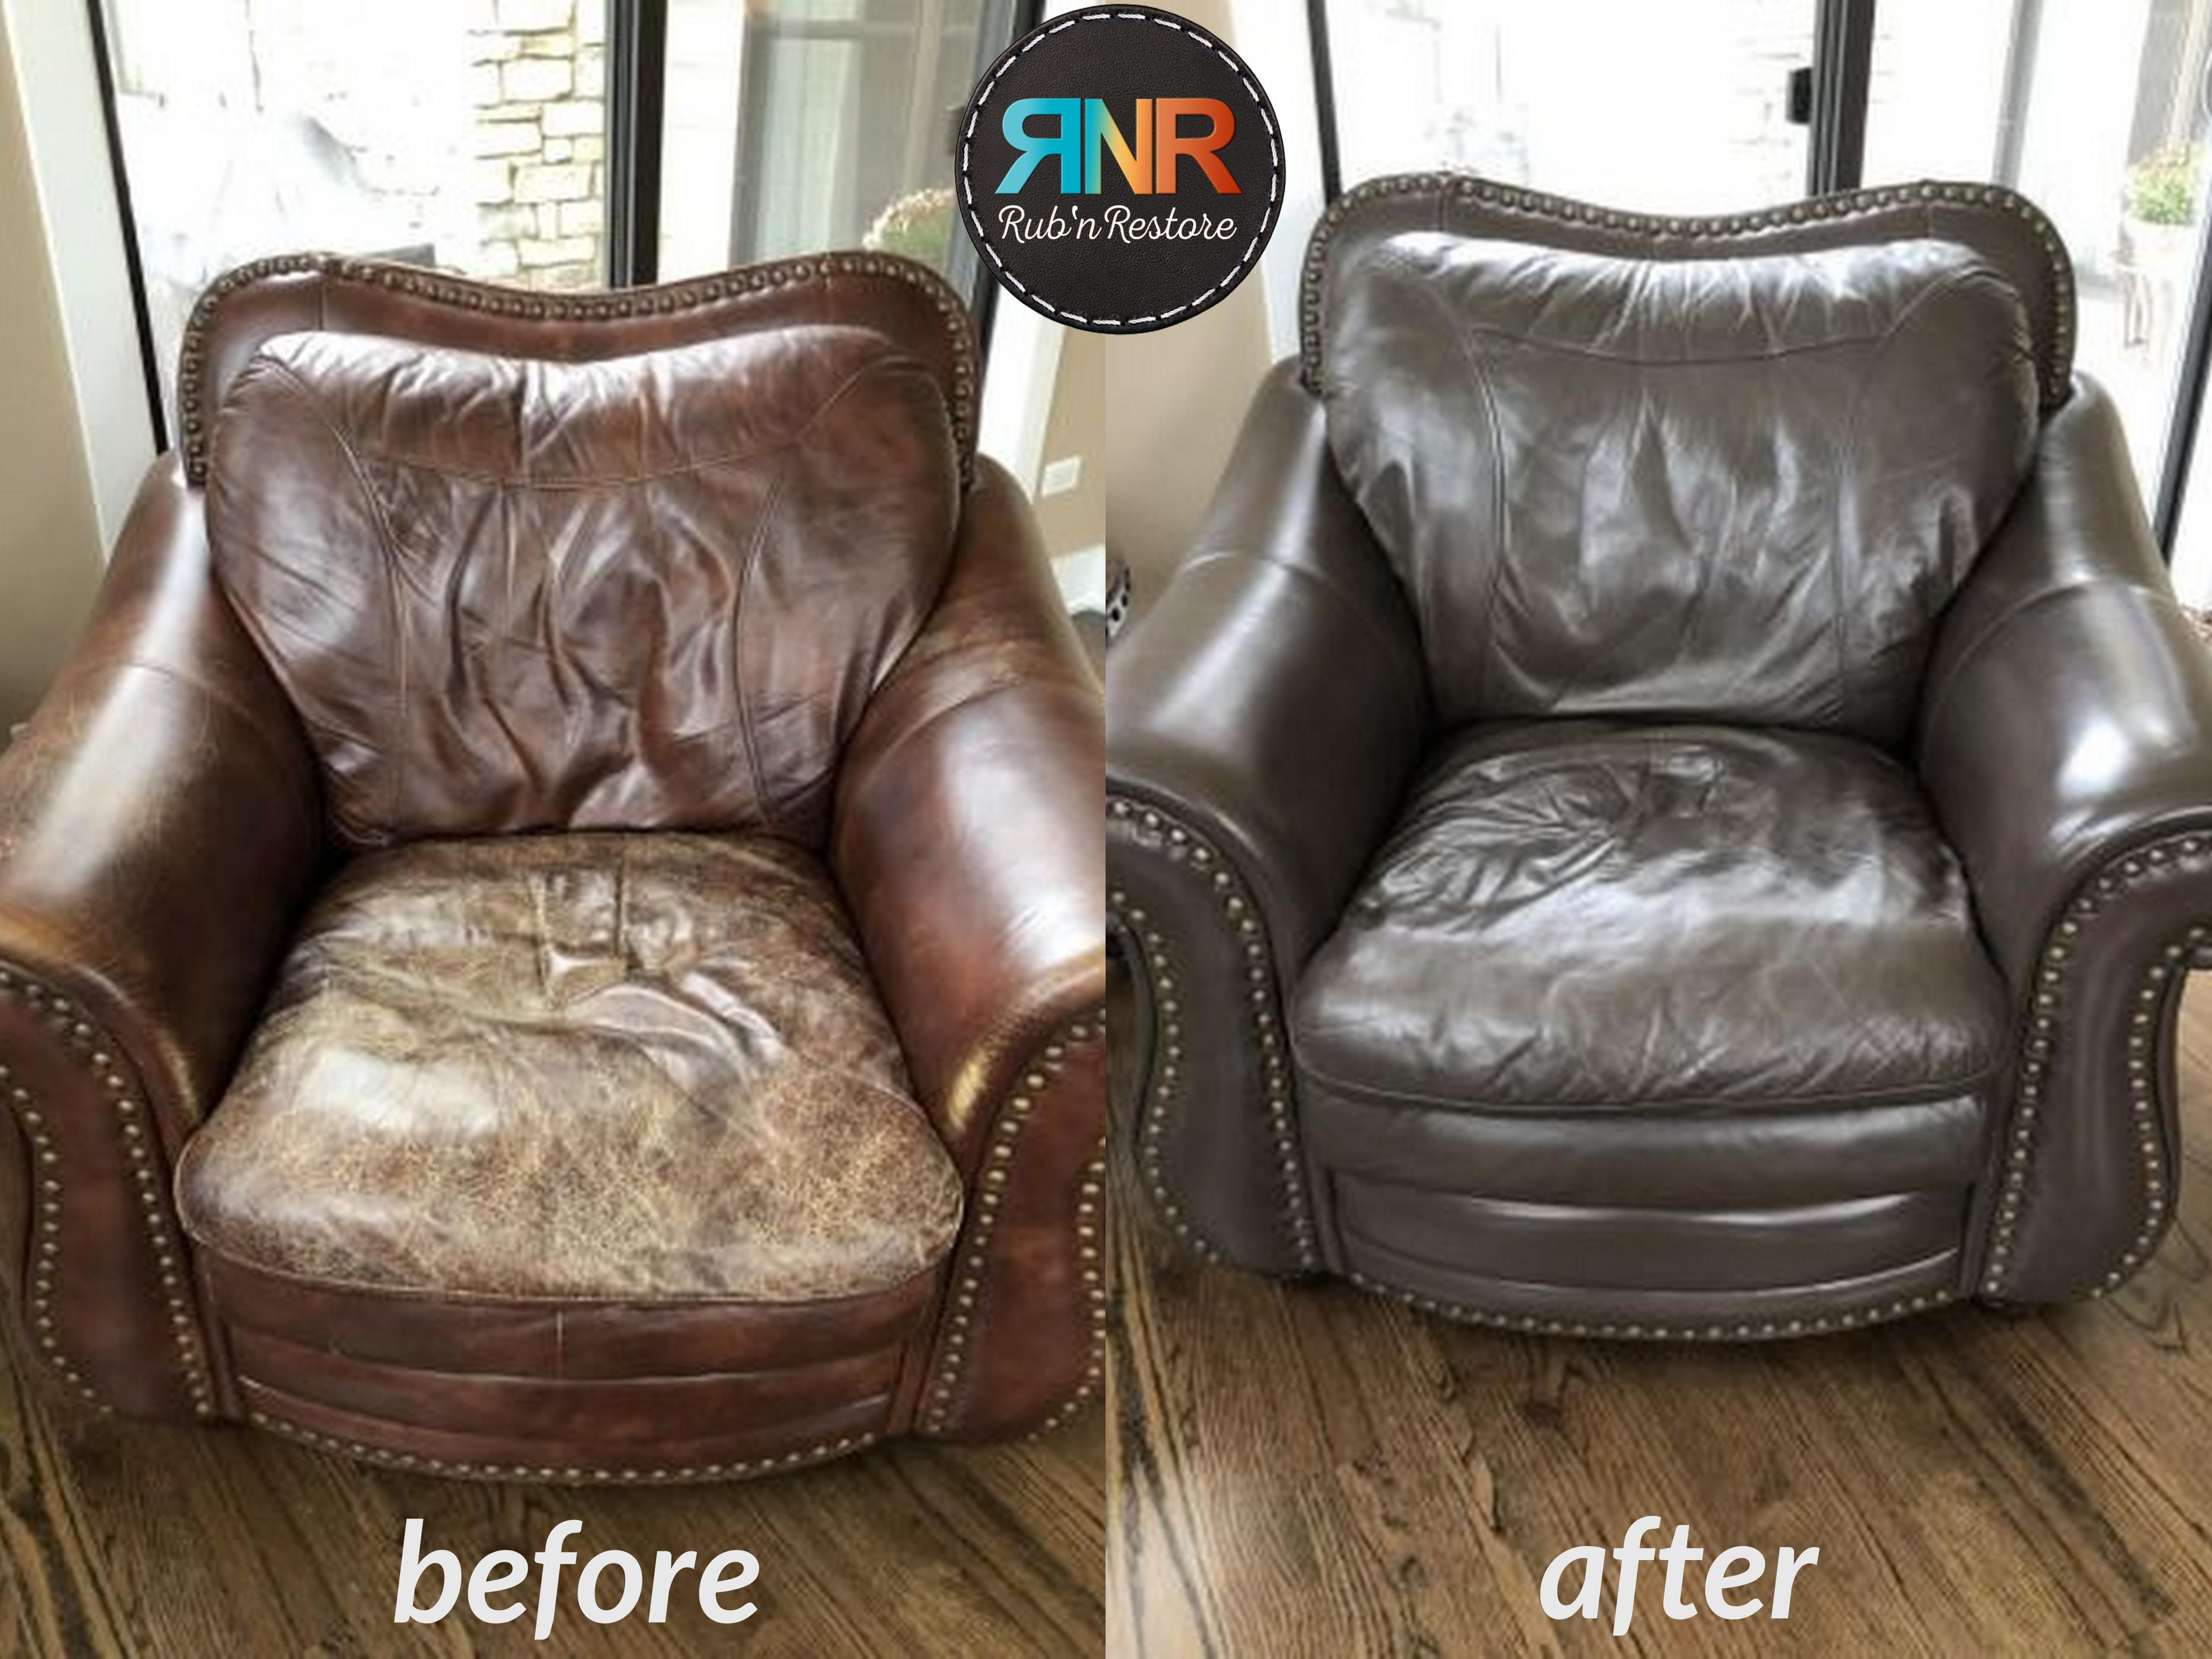 Repairing And Revamping Leather Couch Cushions Leather Couch Repair Cushions On Sofa Couch Cushions